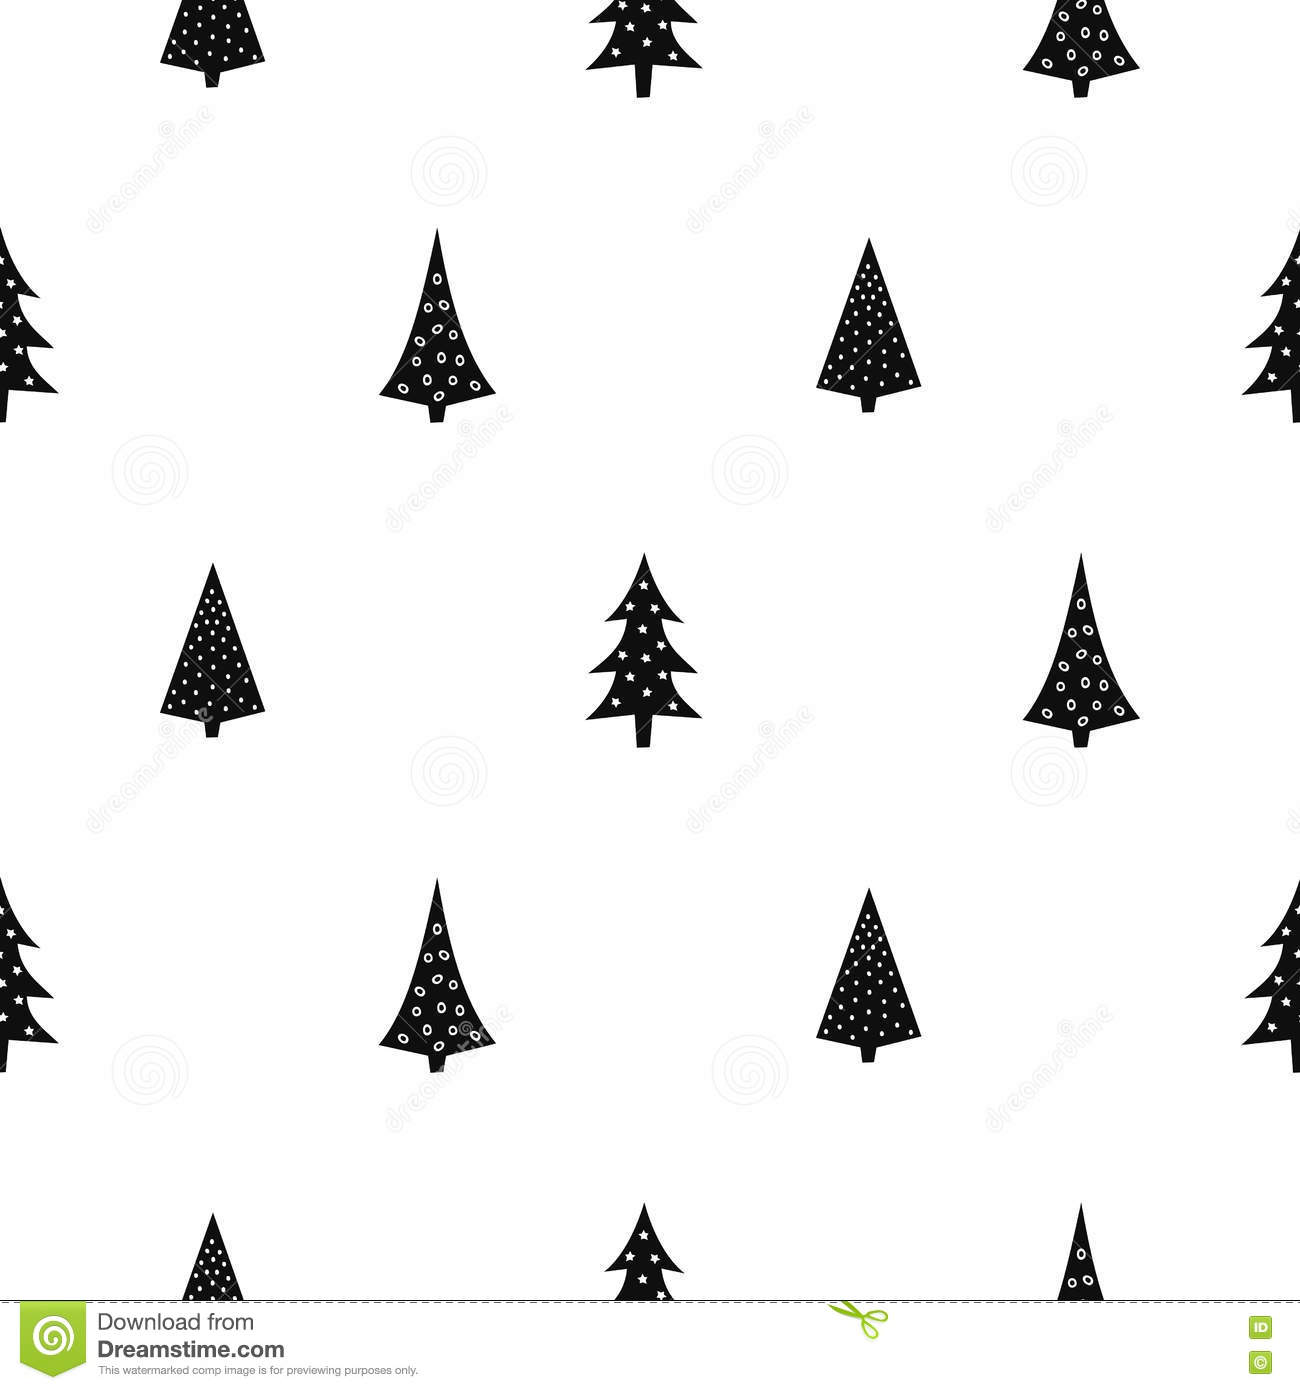 Black And White Simple Seamless Christmas Pattern Stock Vector